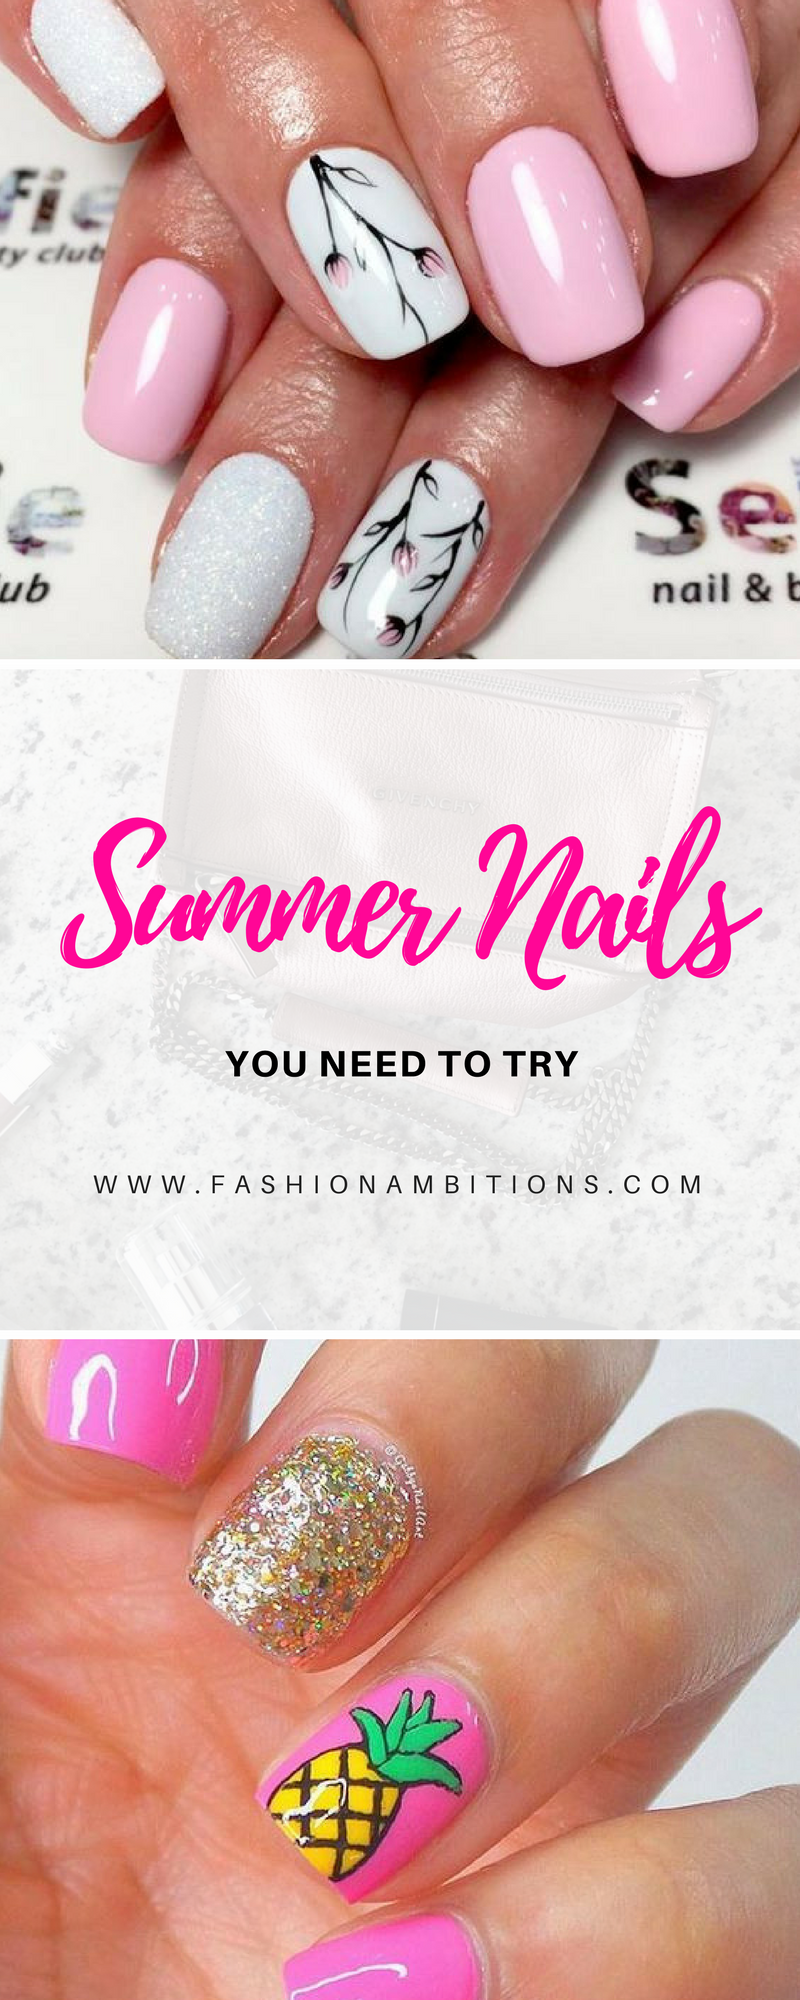 Summer nails designs you need to try accessories pinterest